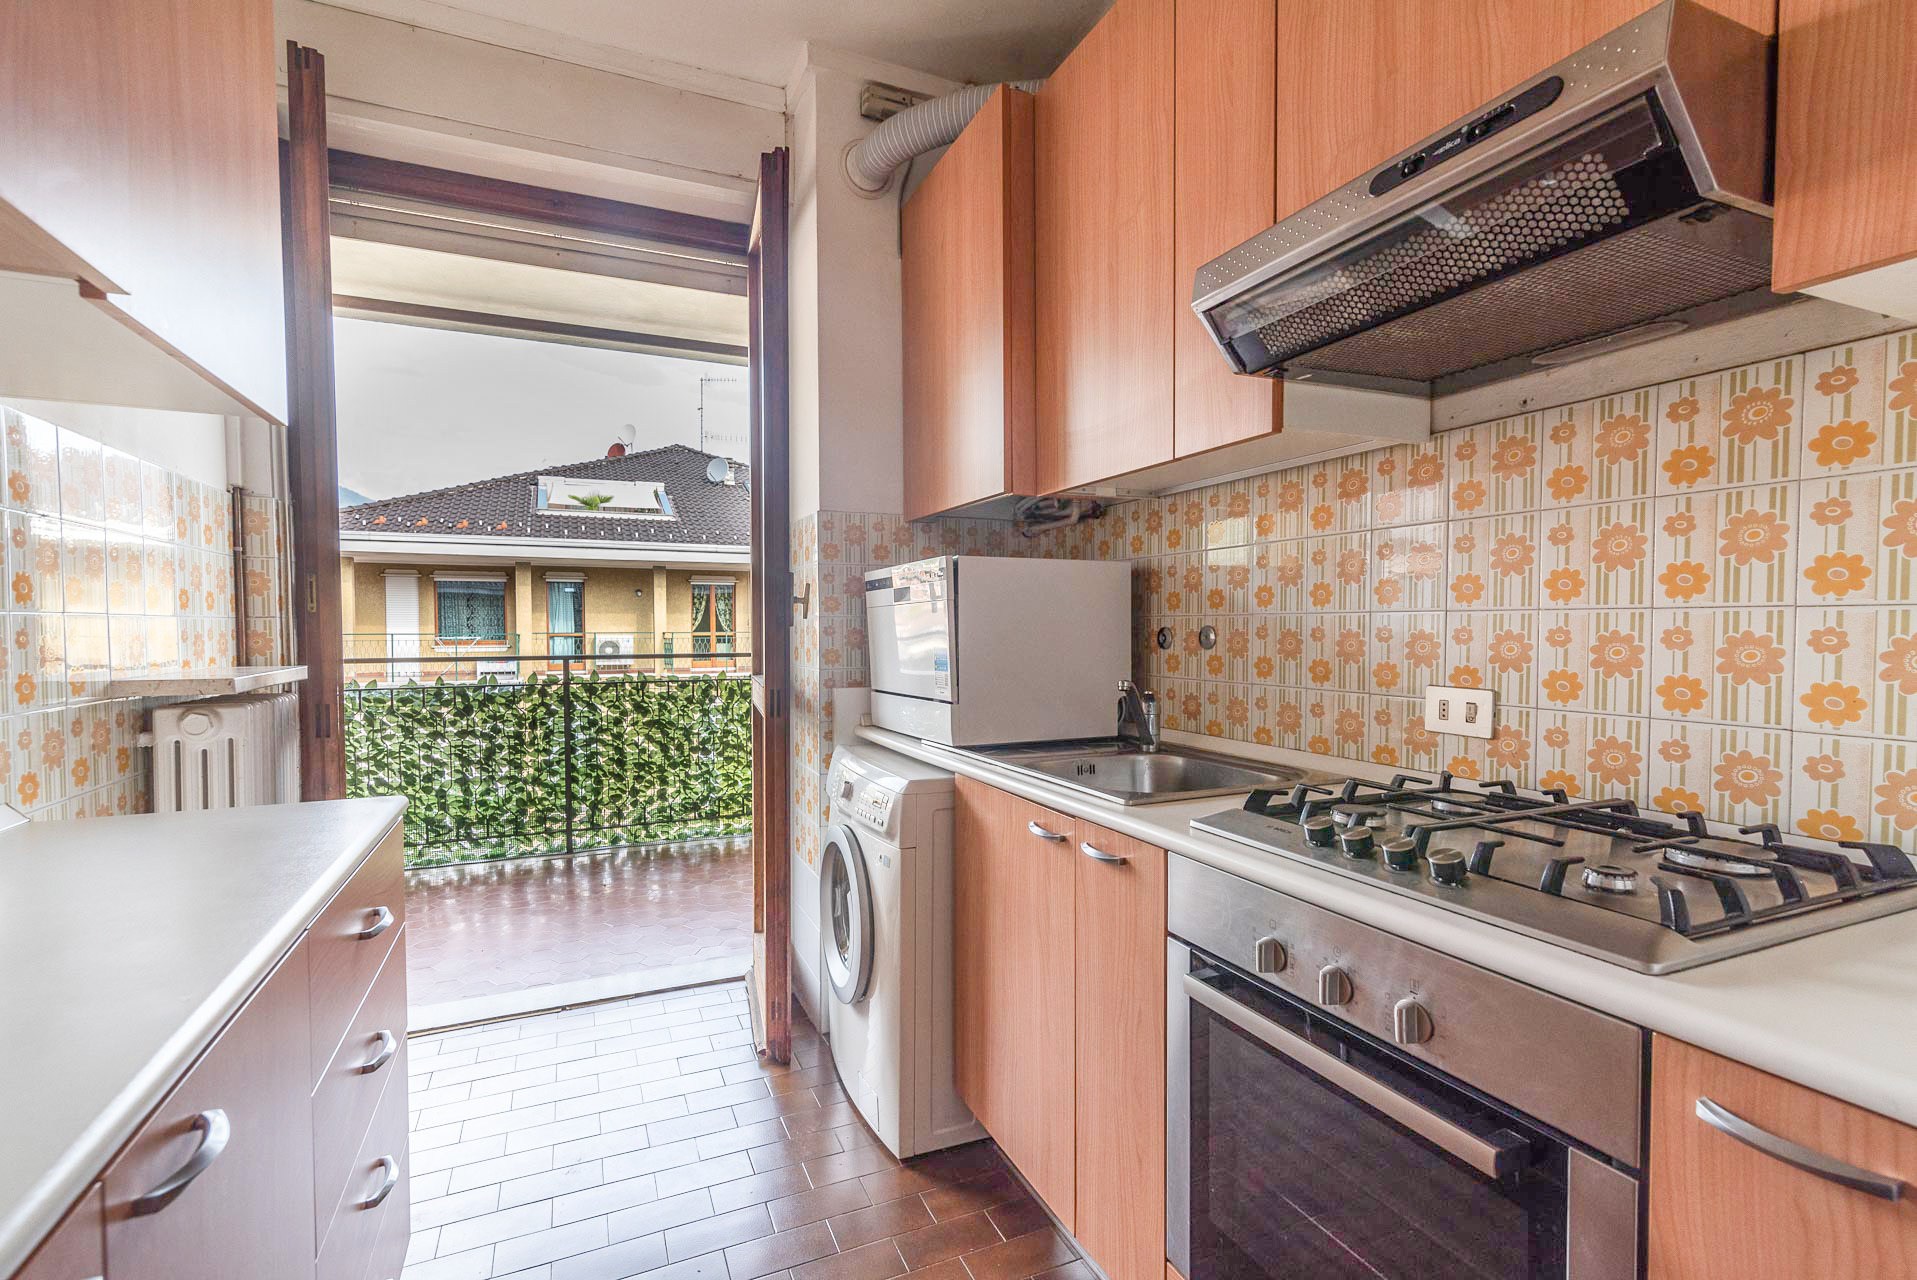 Apartment for rent in Stresa - kitchen